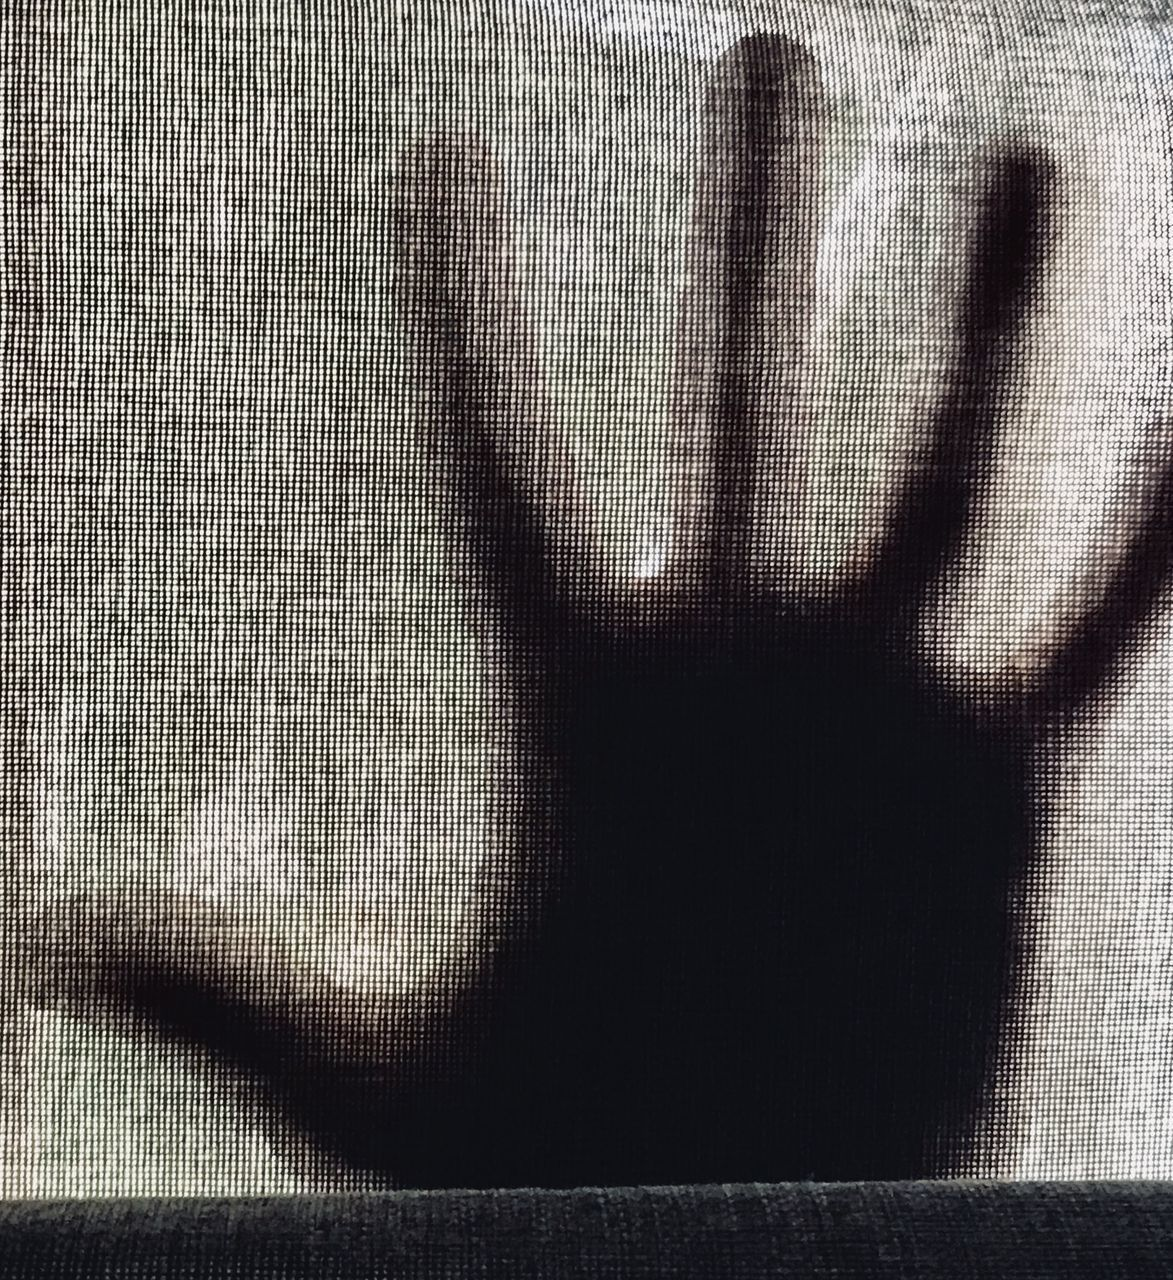 shadow, real people, one person, indoors, day, close-up, lifestyles, human hand, people